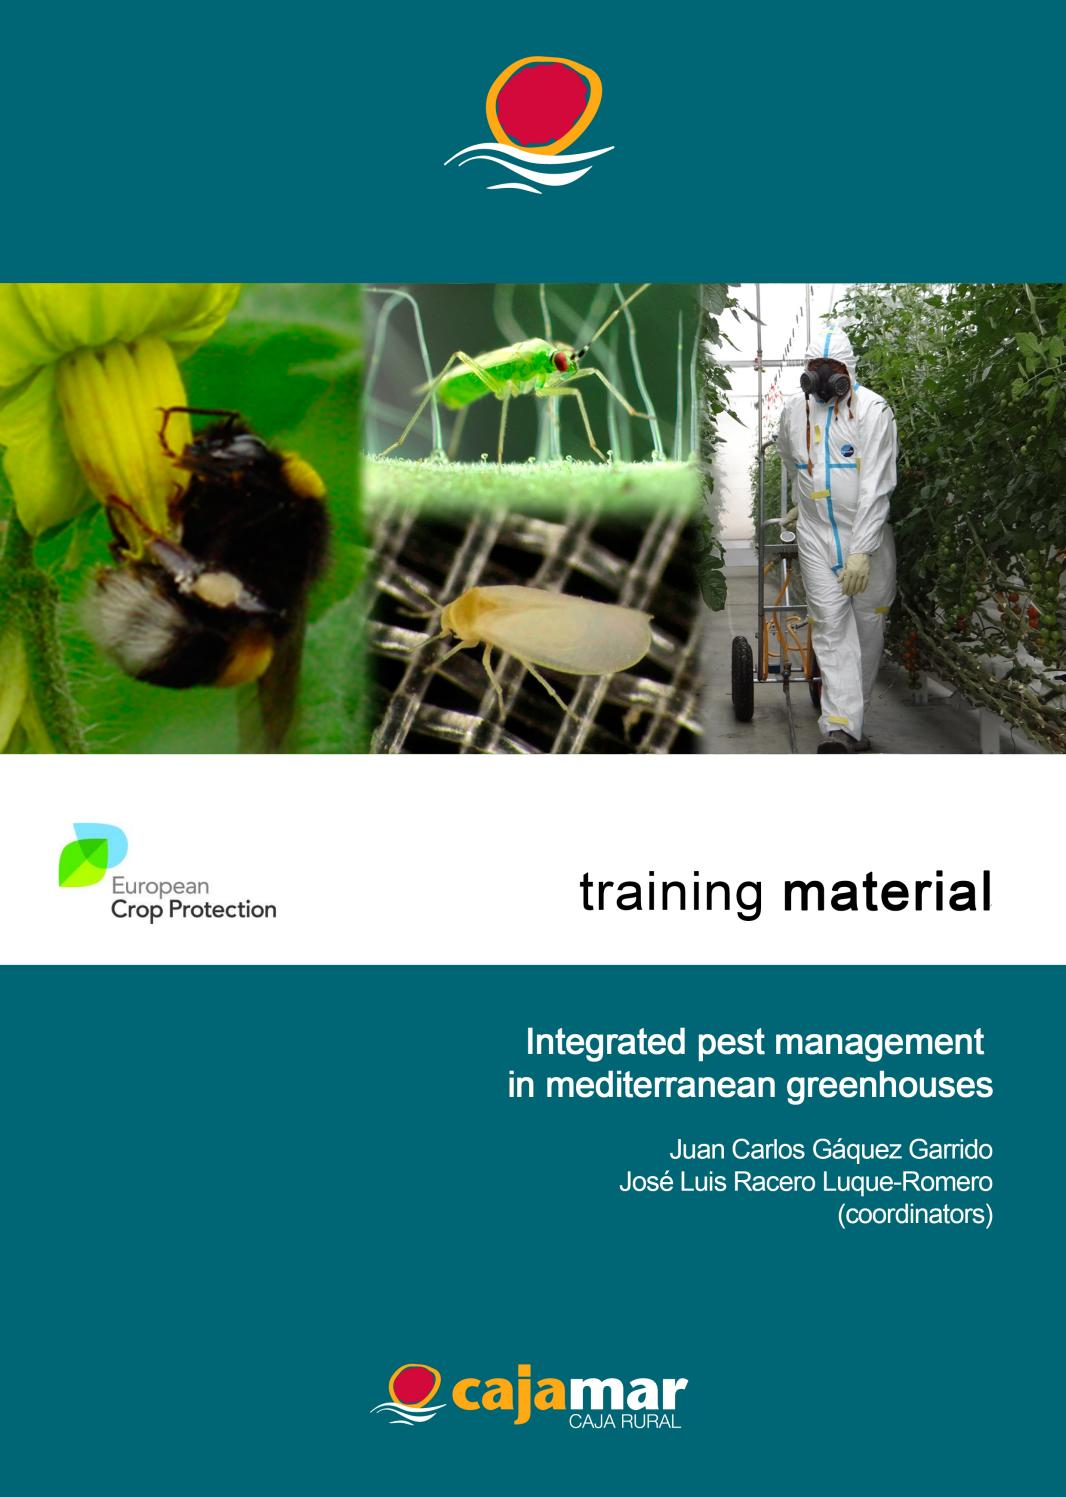 Integrated Pest Management in Mediterranean Greenhouses by ECPA - issuu